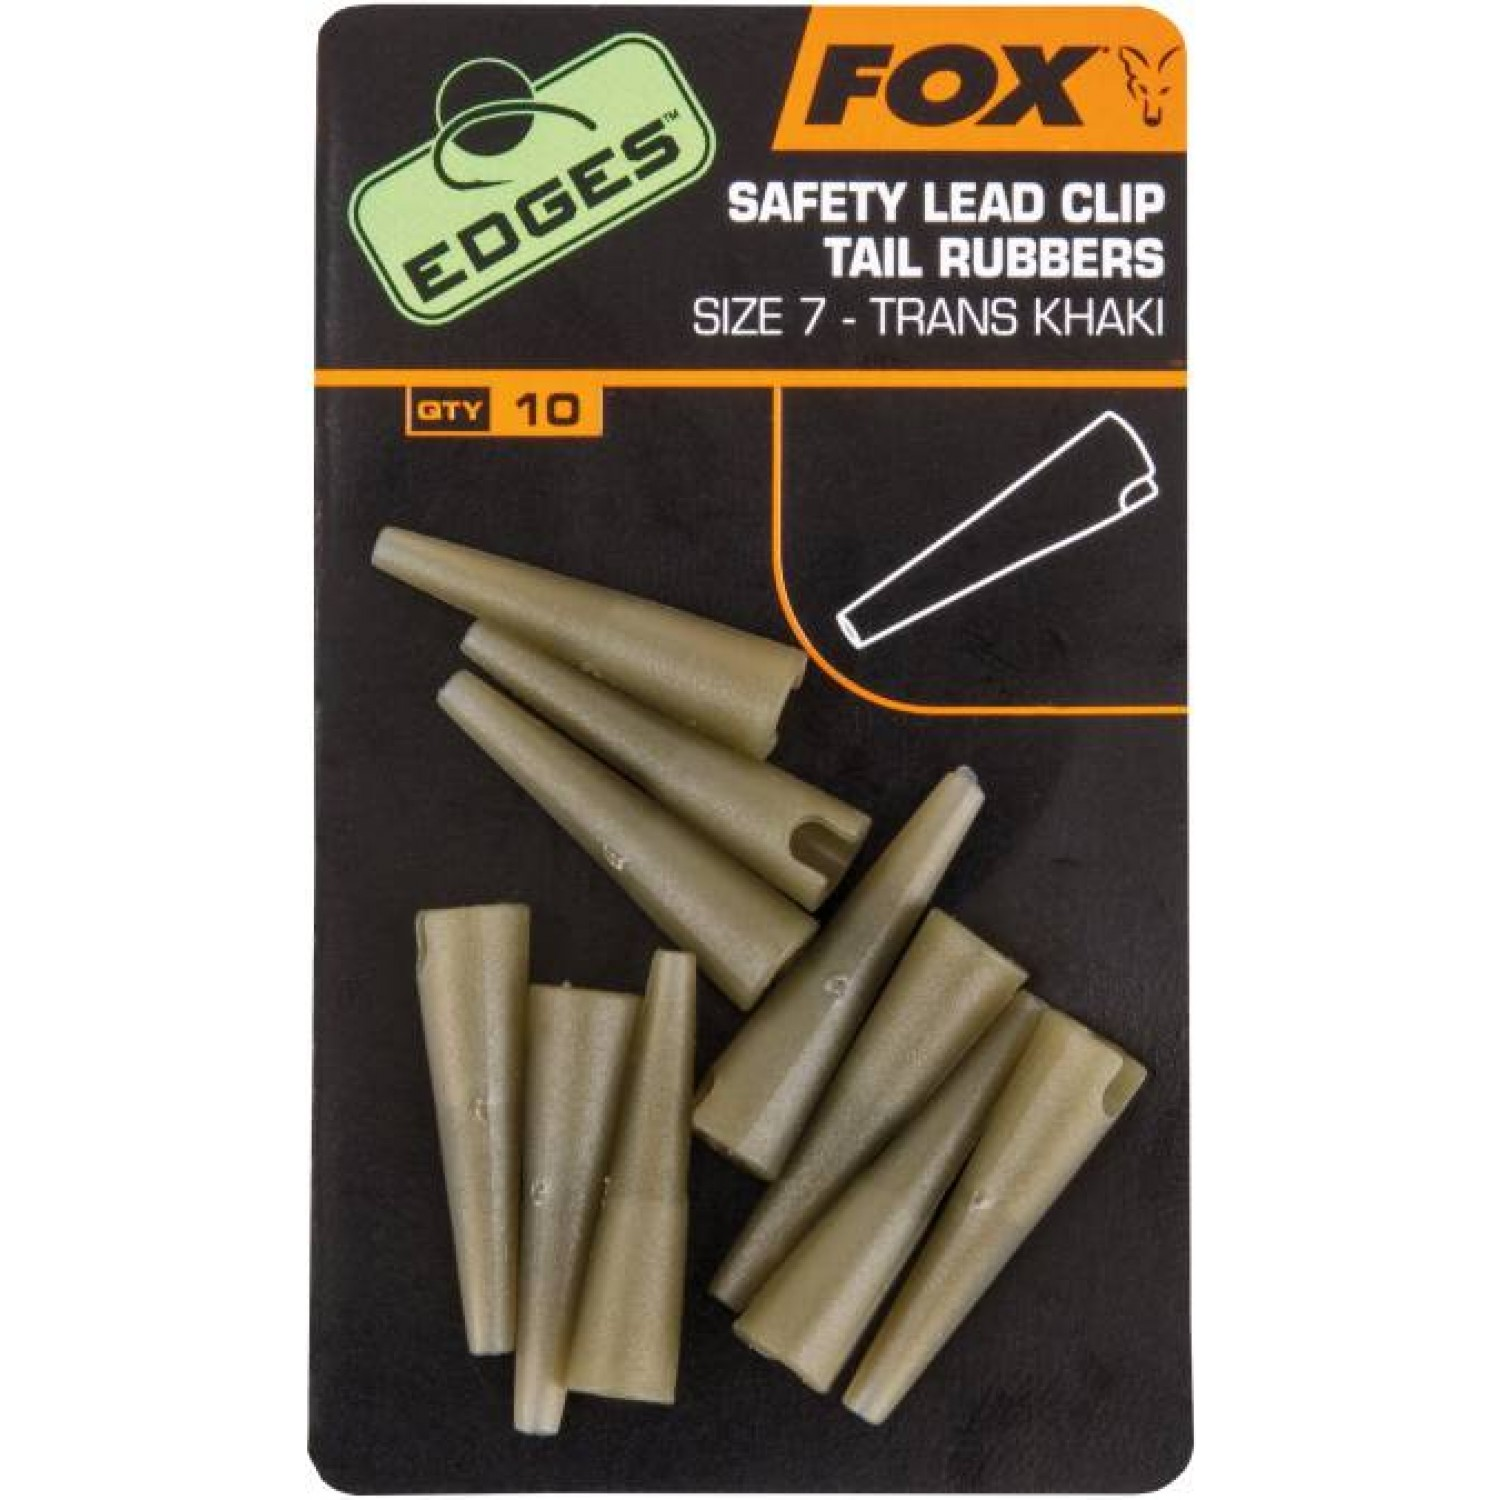 Fox Edges Lead Clip Tail Rubbers, Size 7